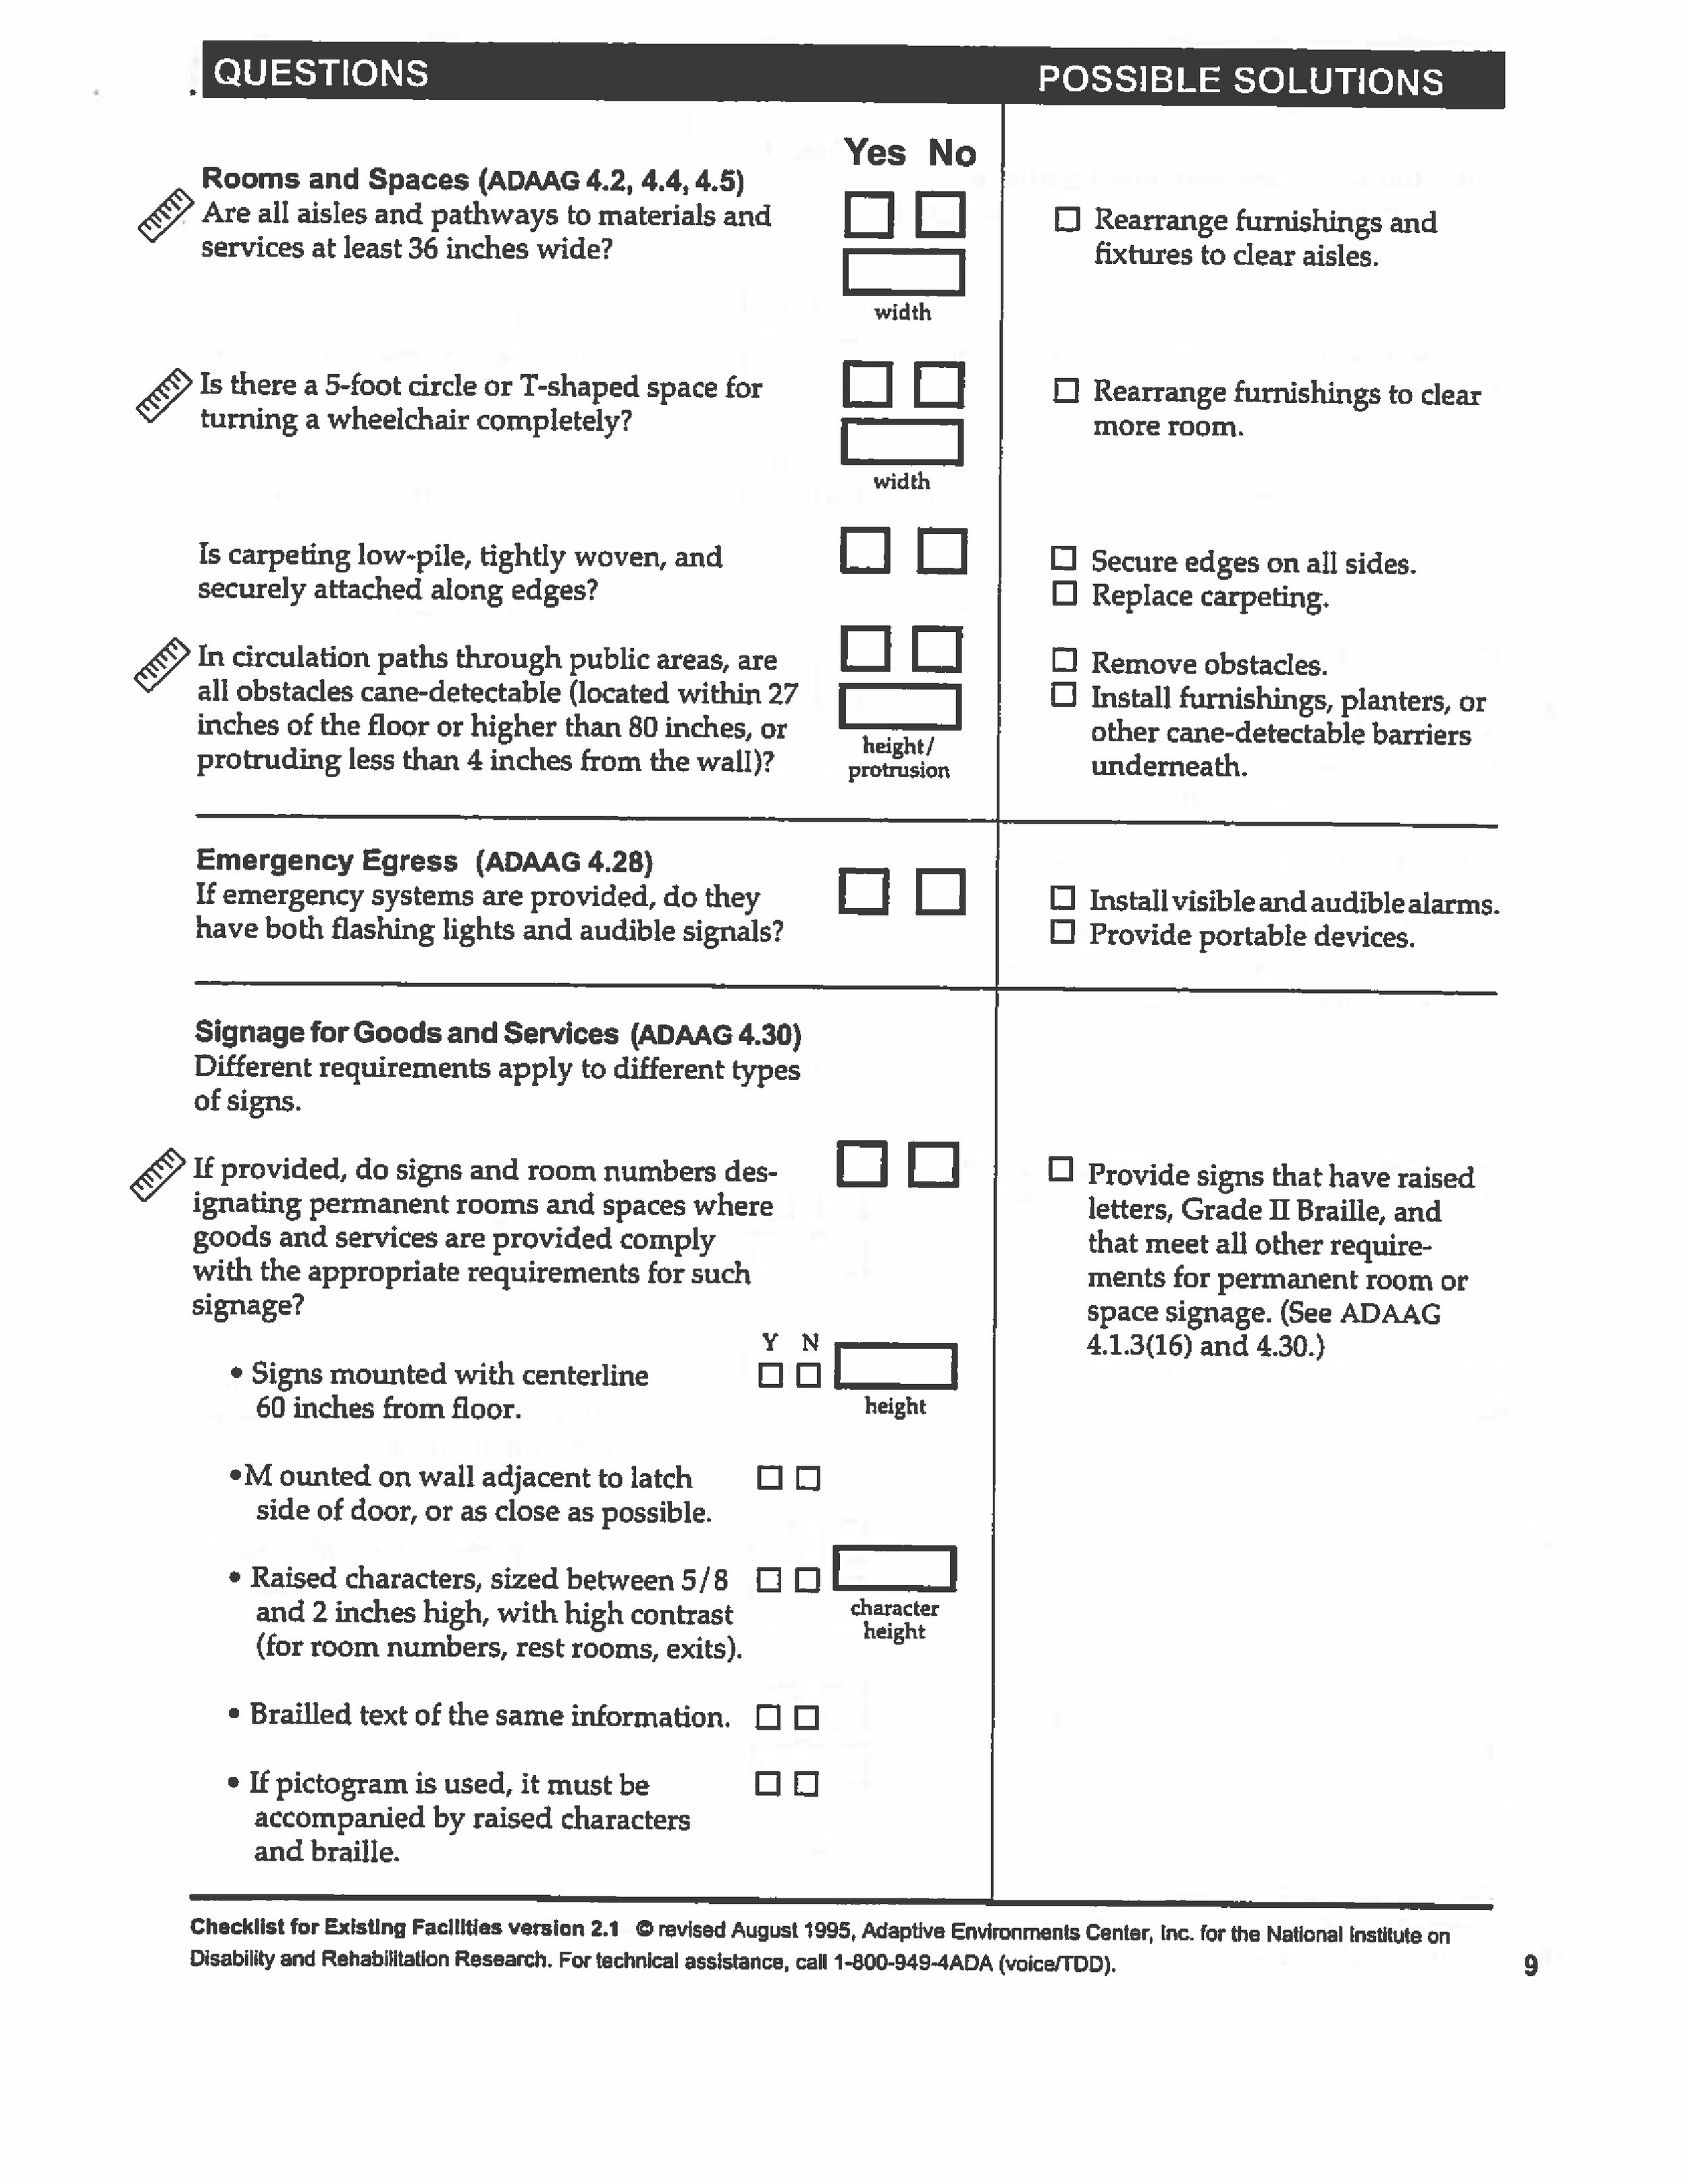 Checklist for Existing Facilities-page-8.jpg